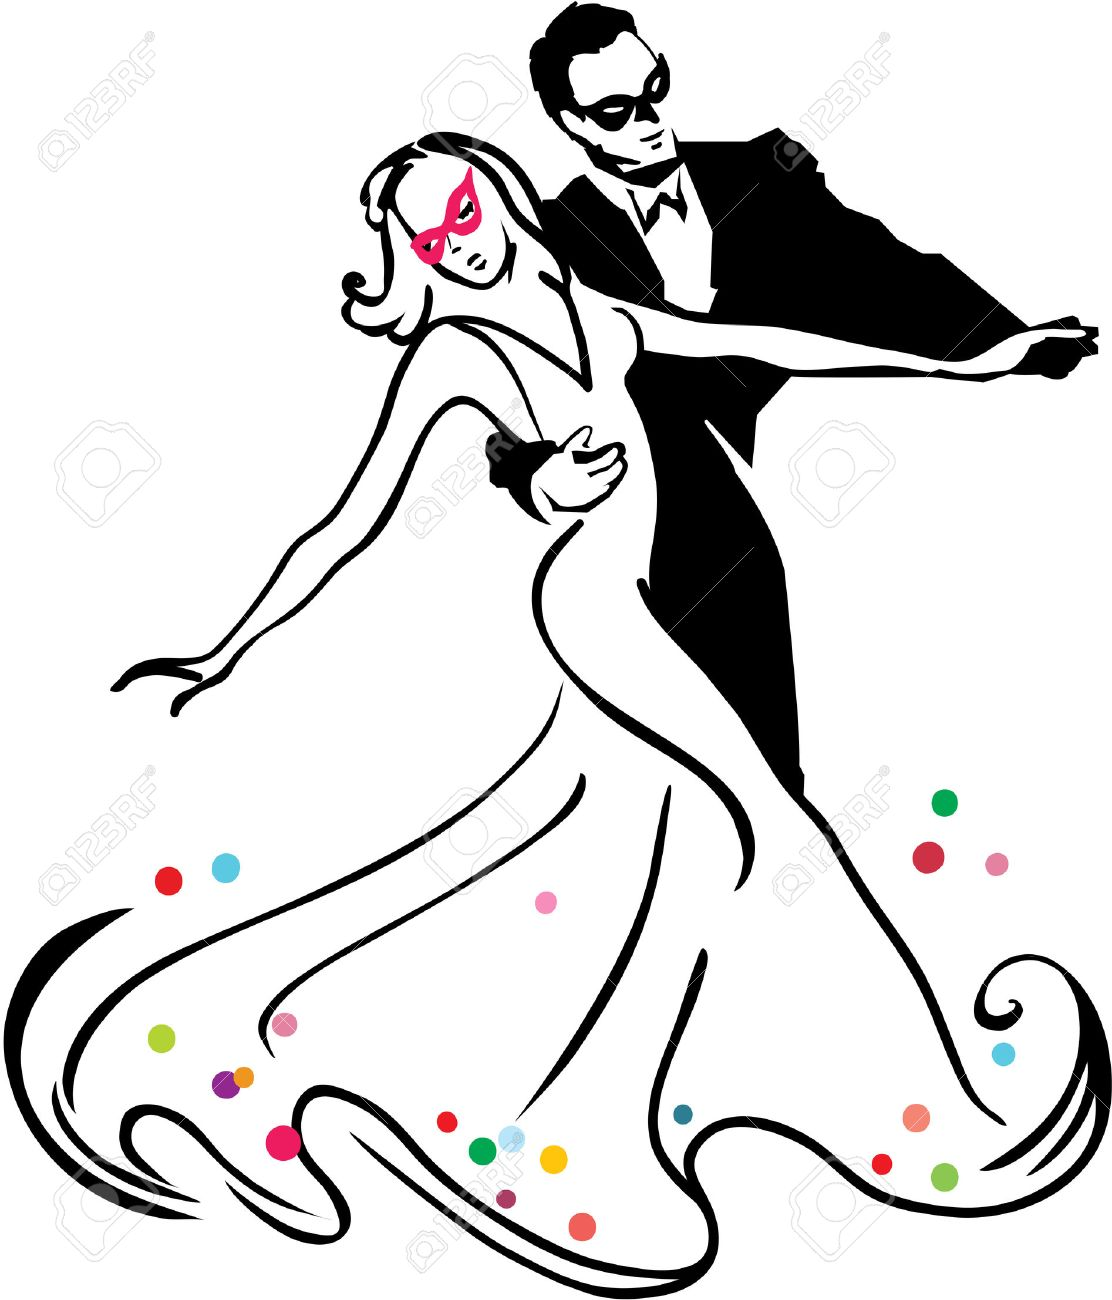 965 Waltz Dance Stock Vector Illustration And Royalty Free Waltz ...